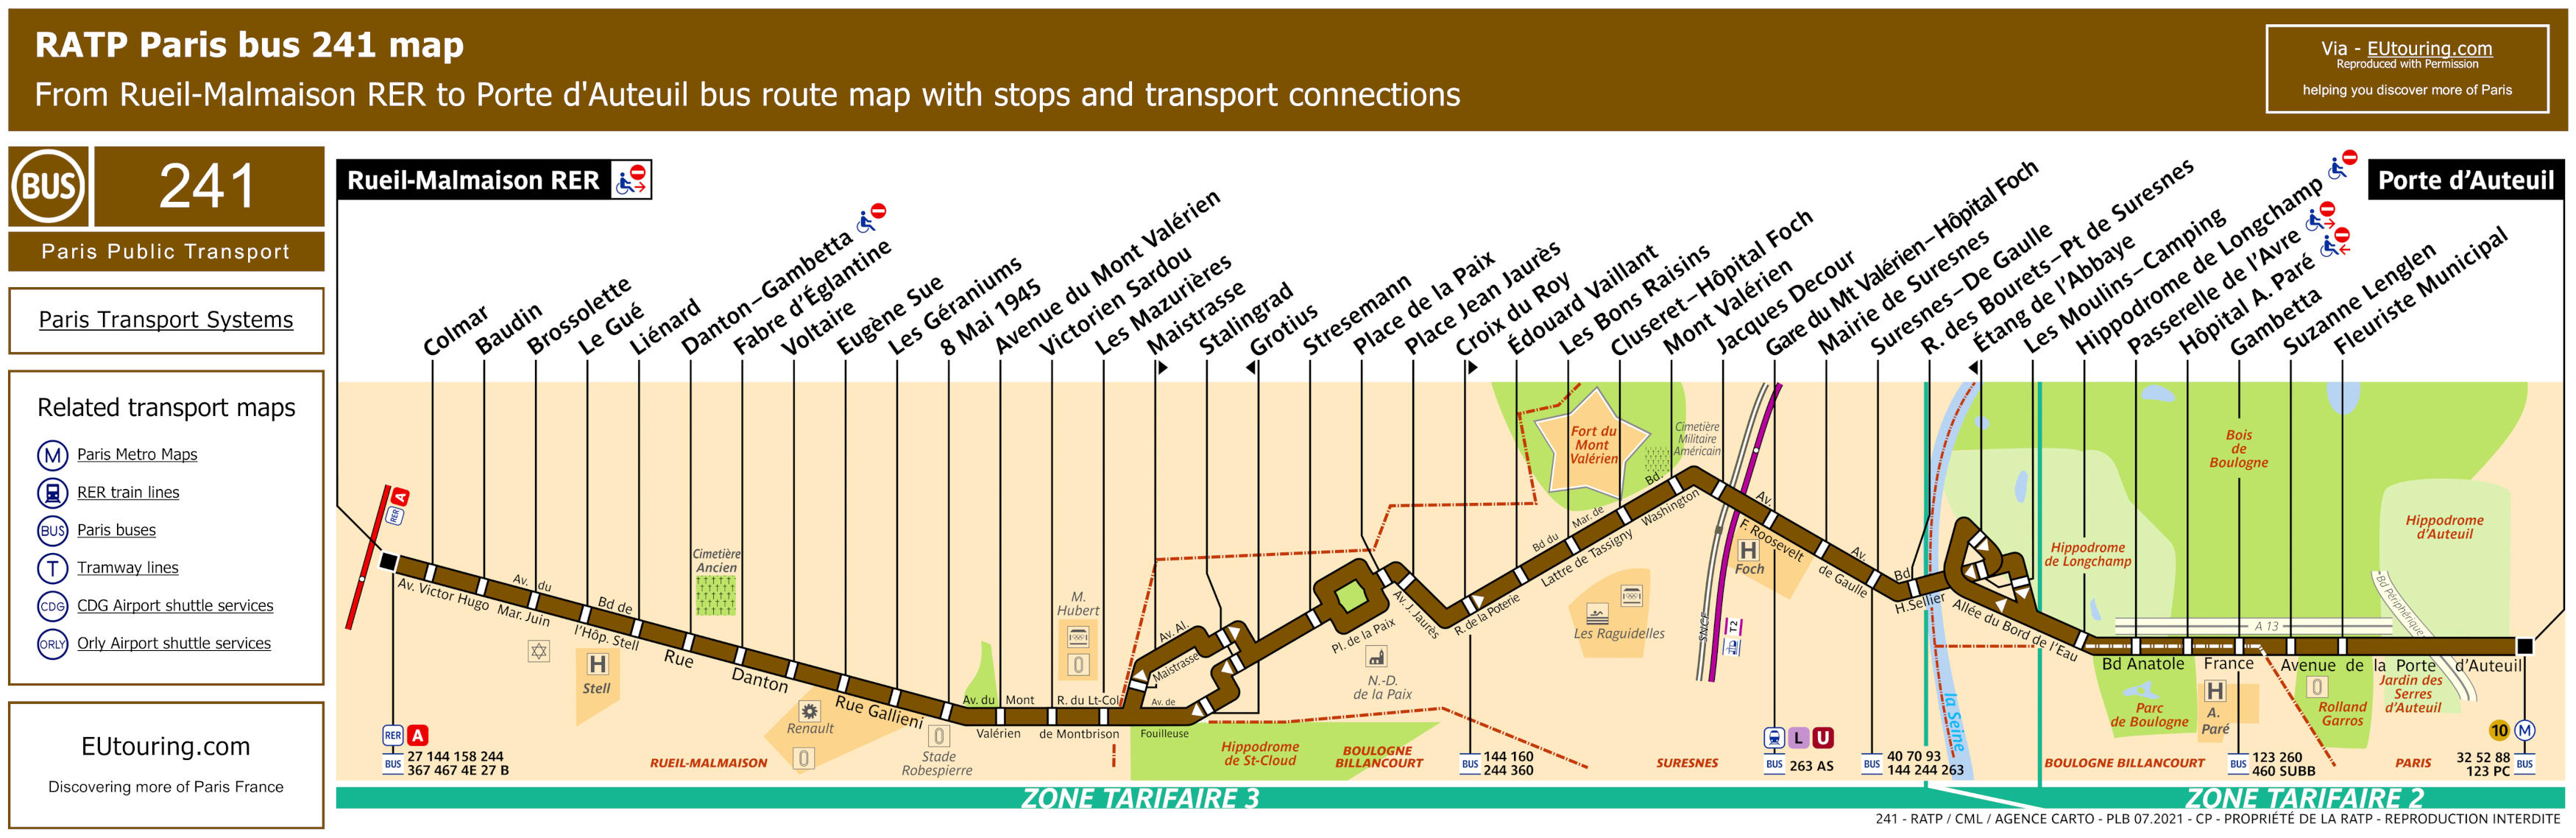 ratp route maps for lines 240 through to 249